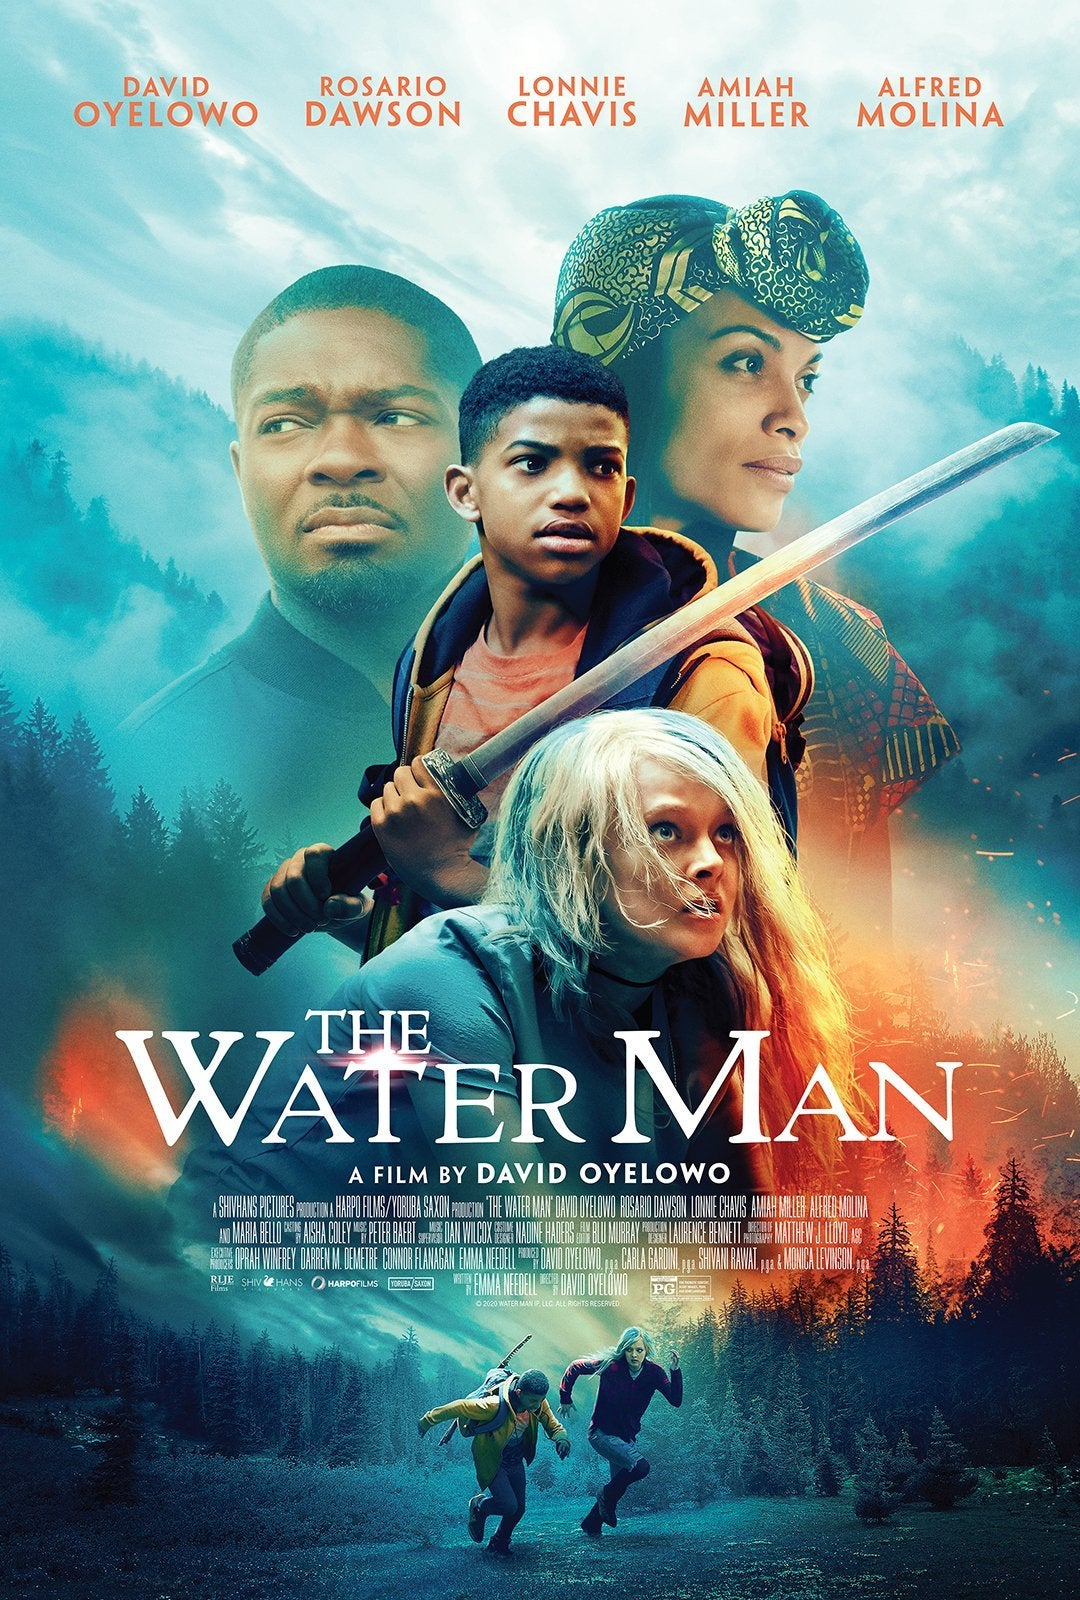 the water man movie poster